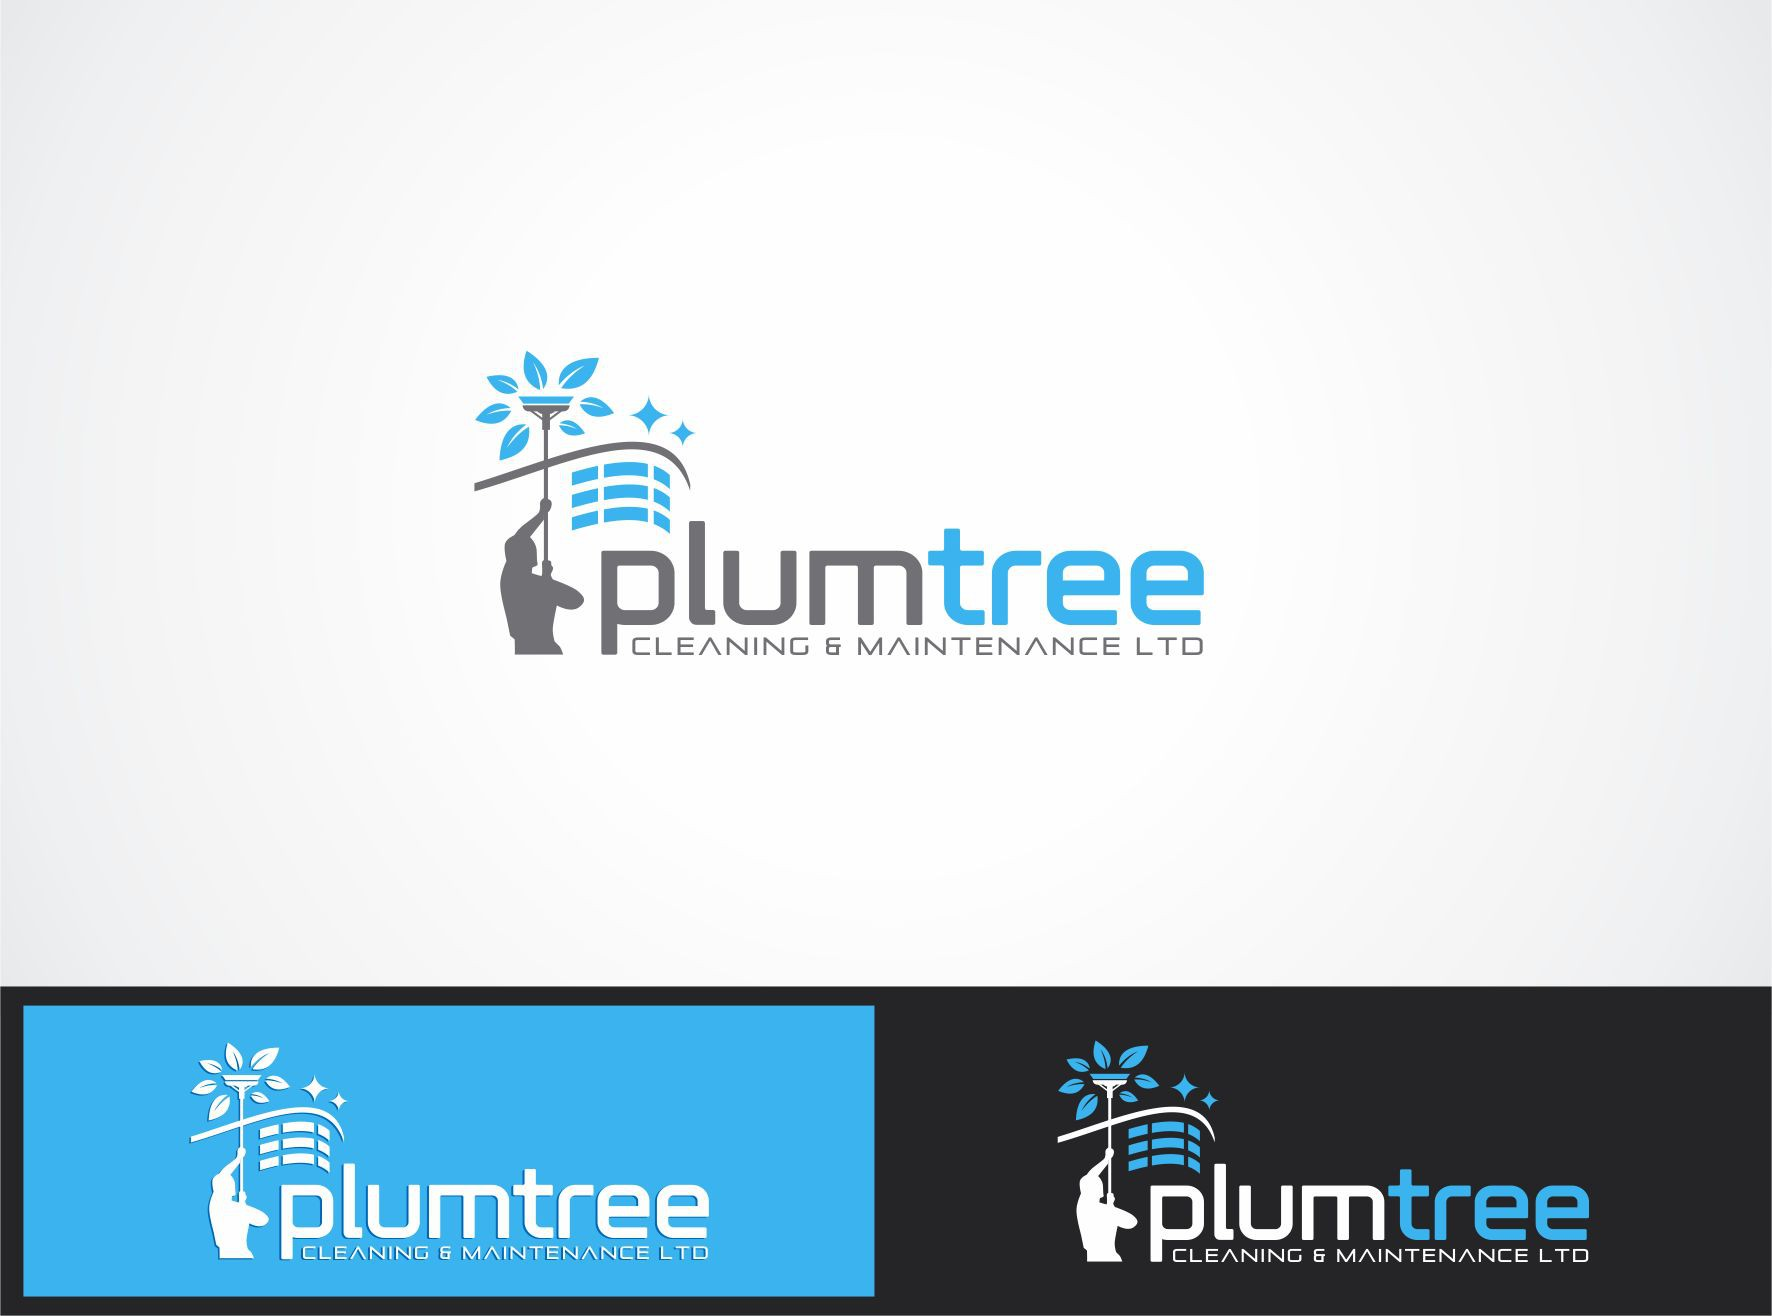 Create the next logo for Plumtree Cleaning & Maintenance Ltd